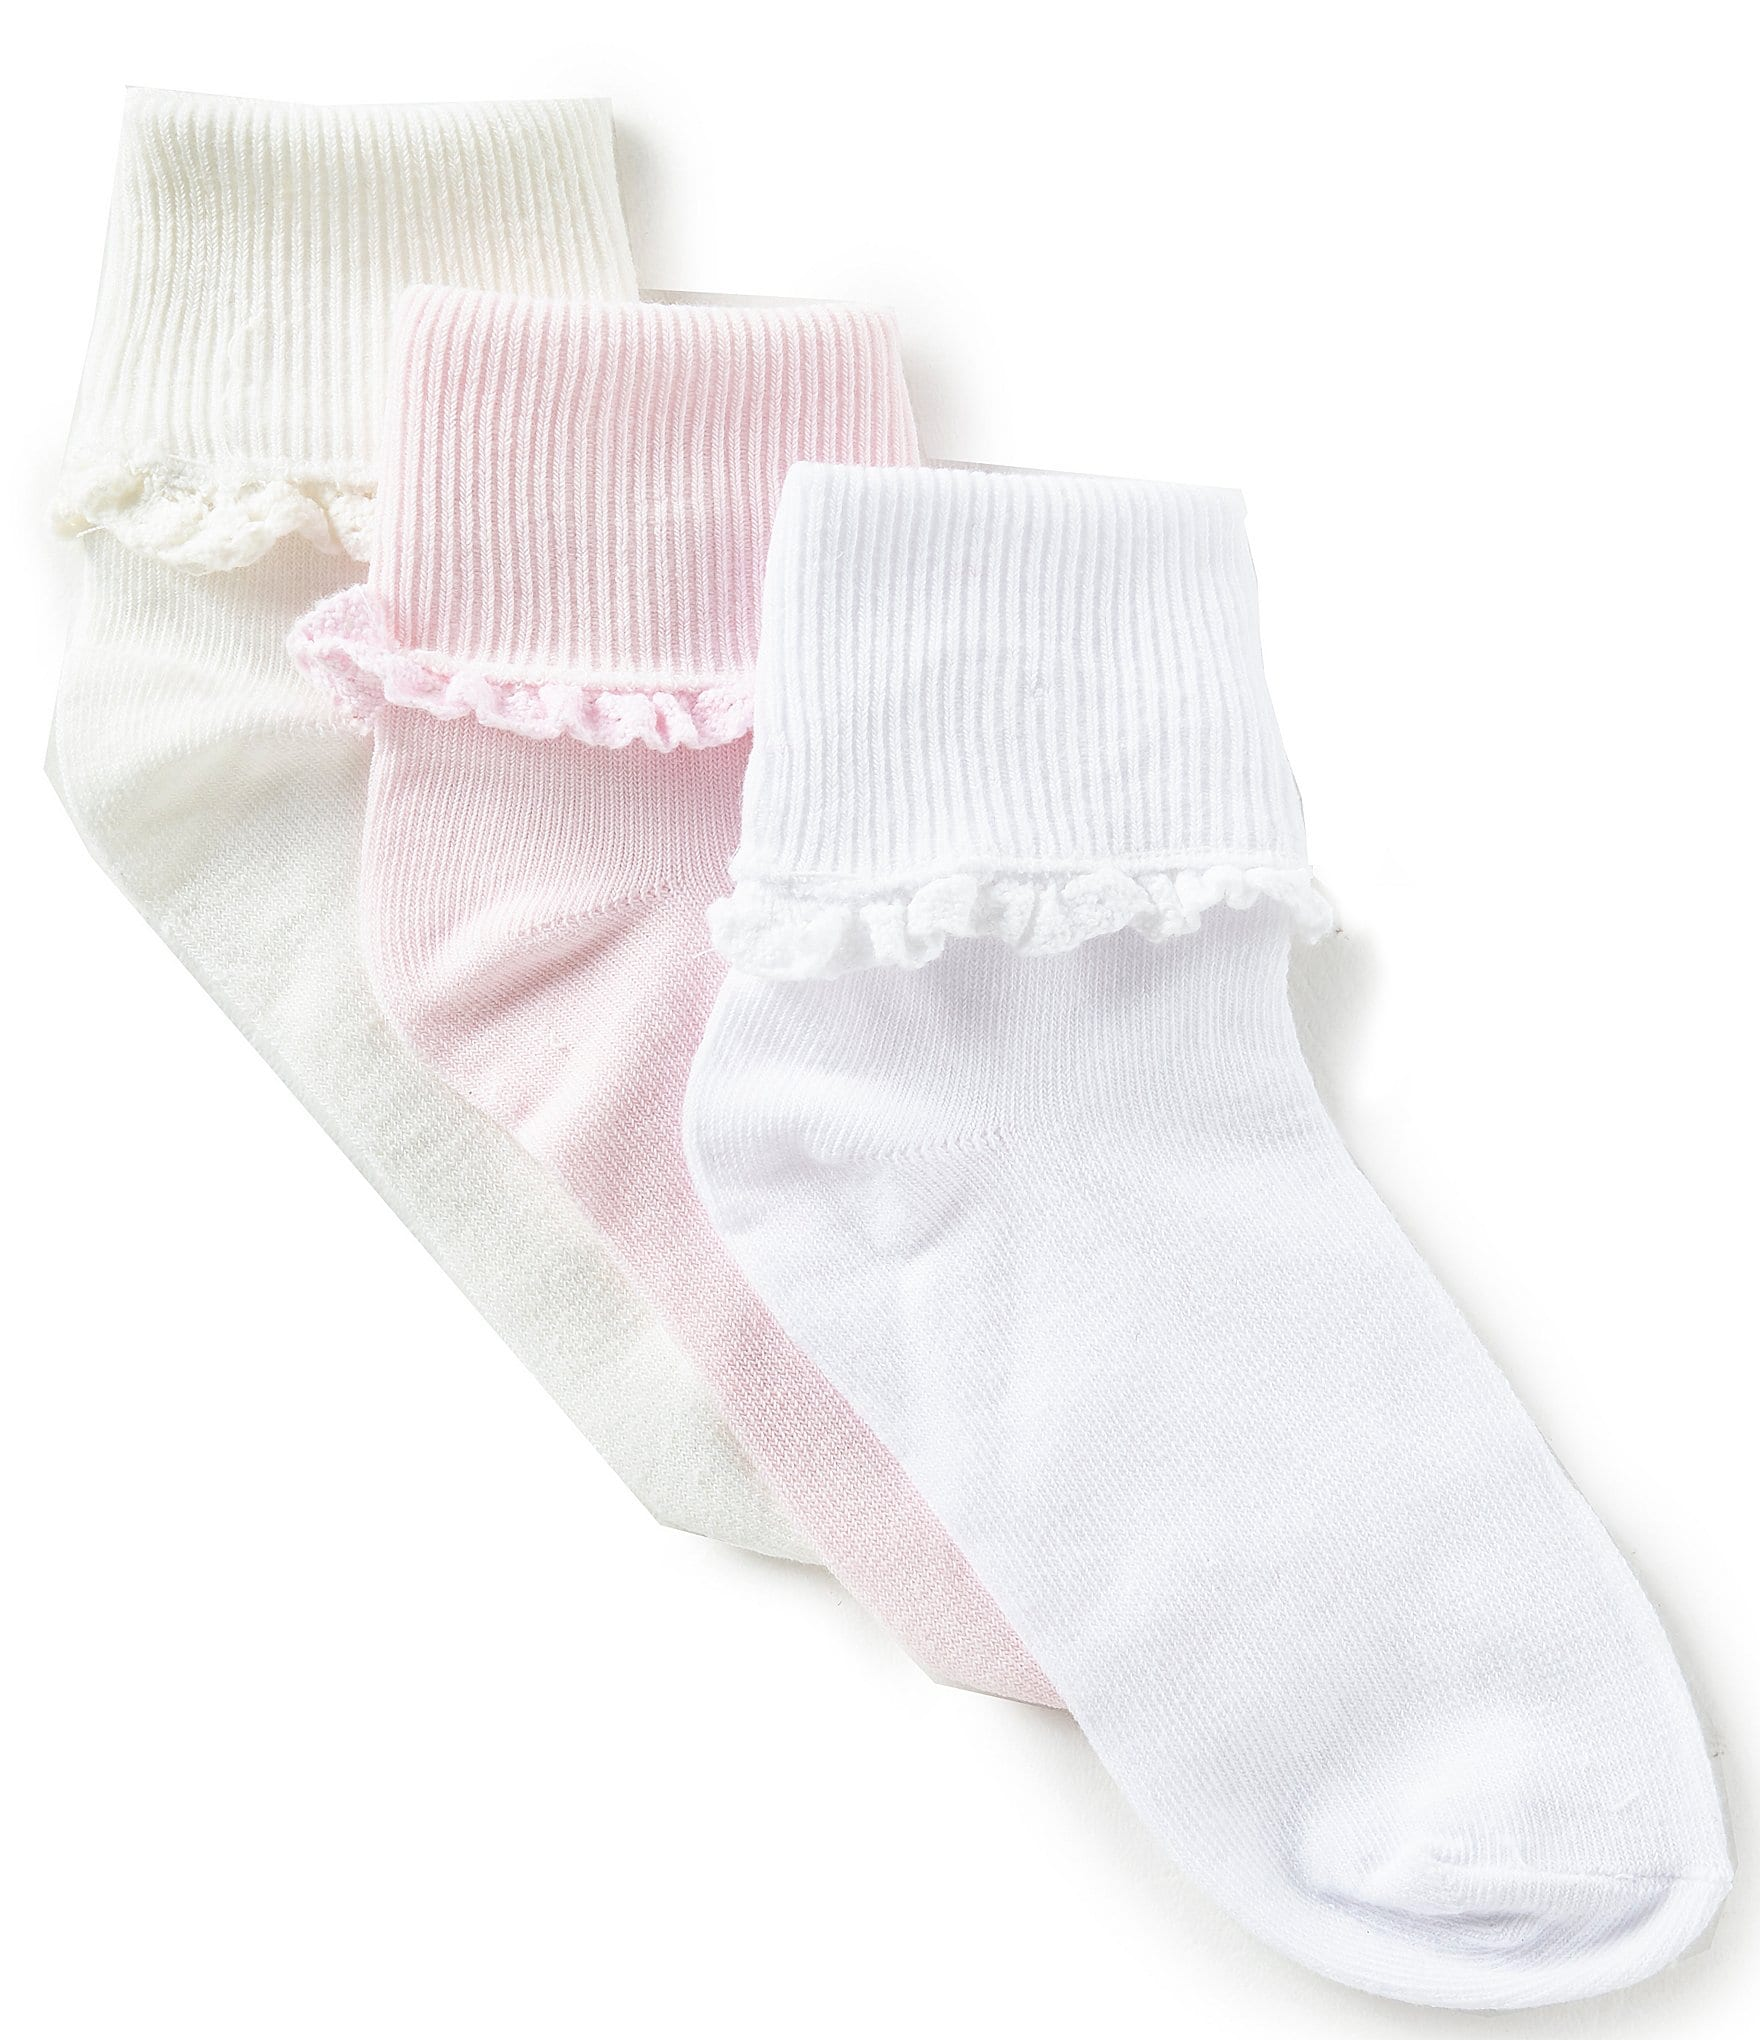 kids socks Kids & Baby Clothing & Accessories